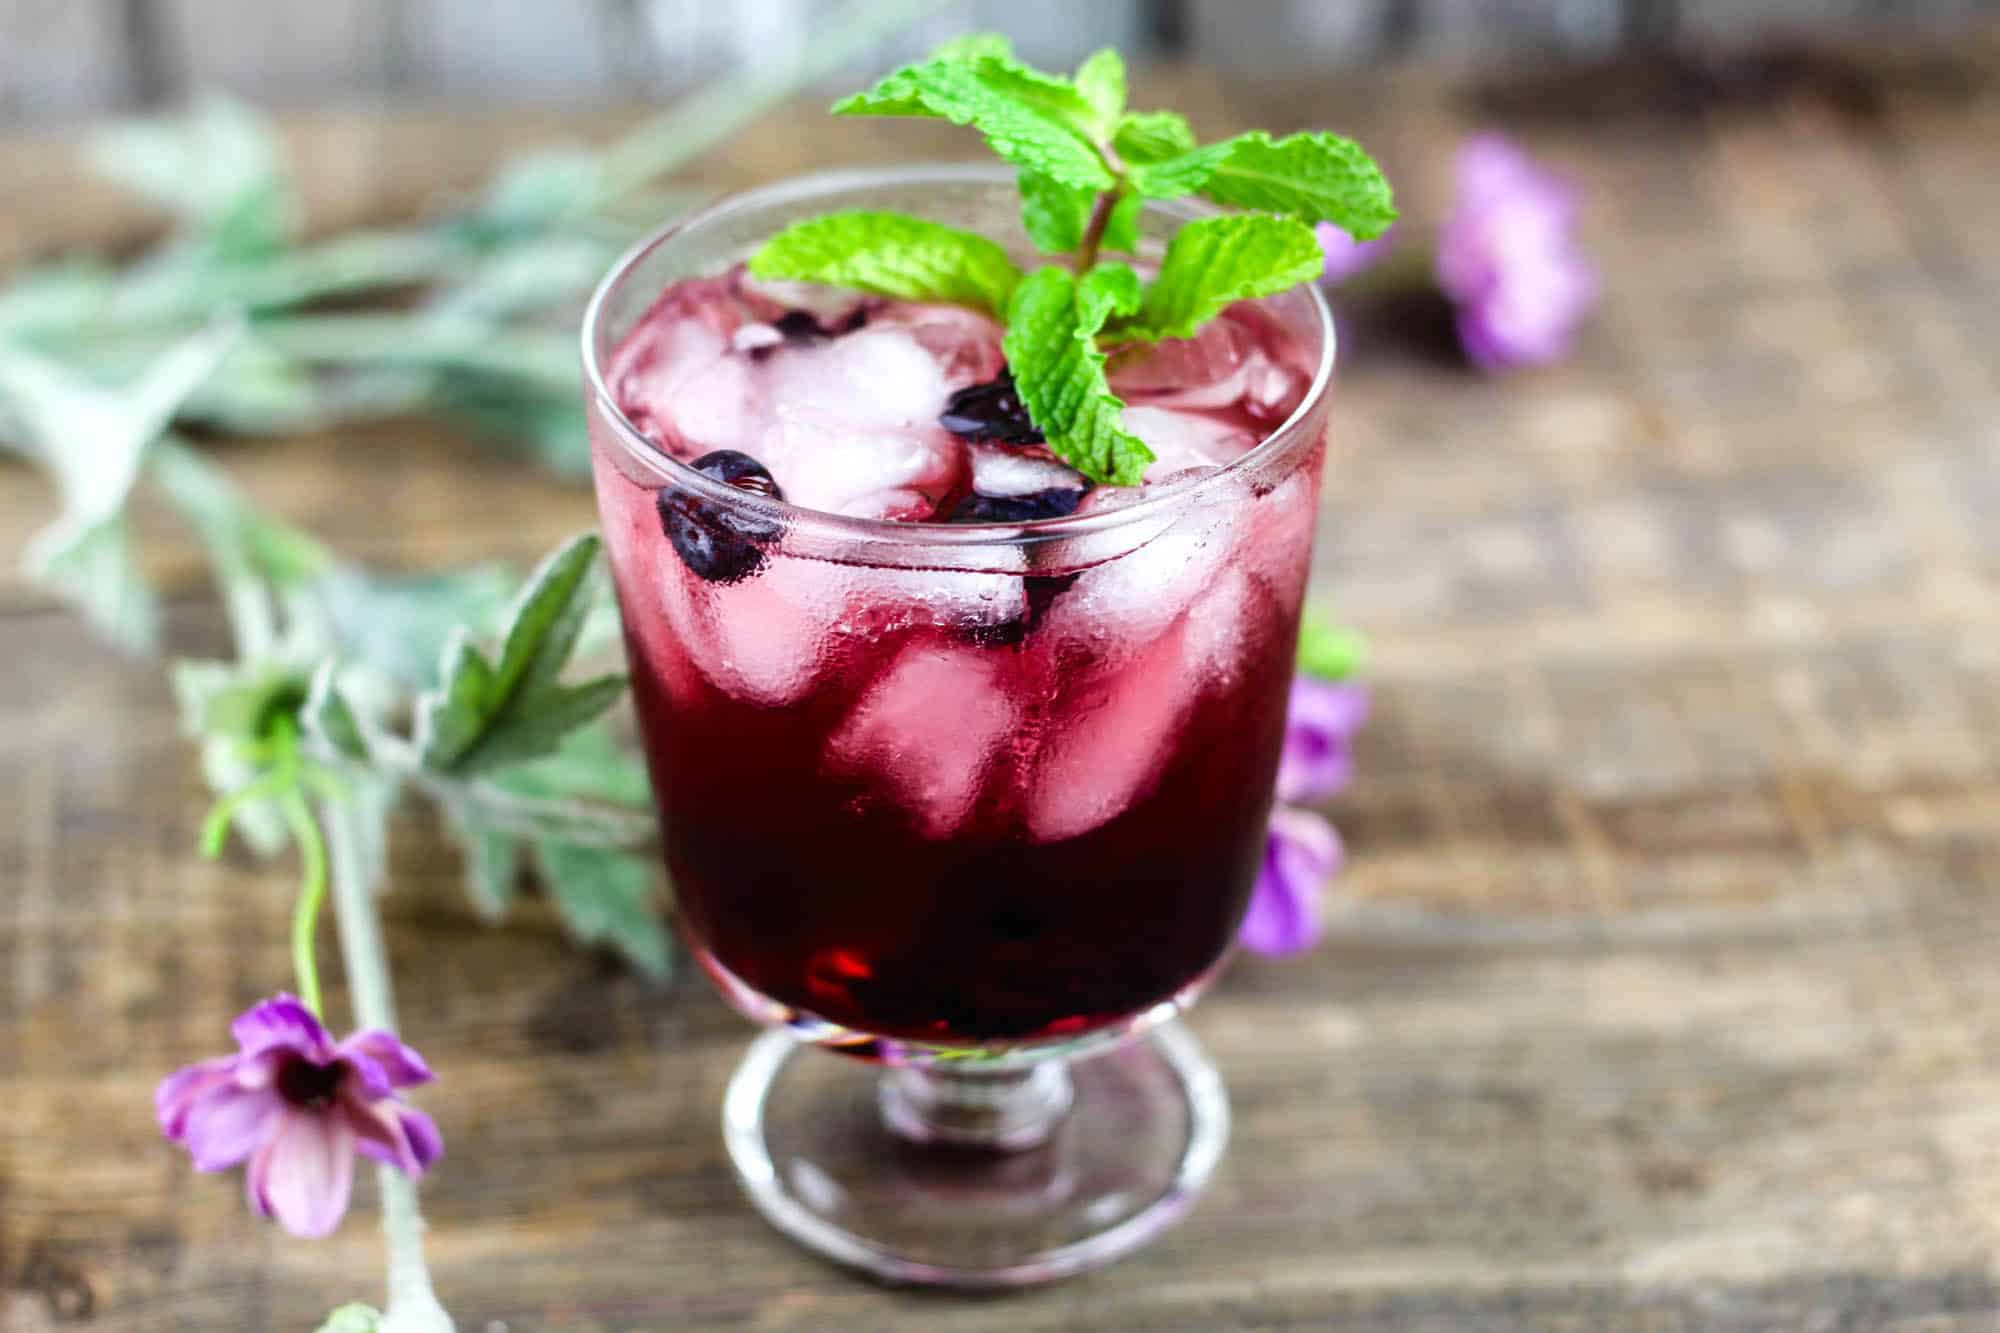 How to make a cherry vodka sour